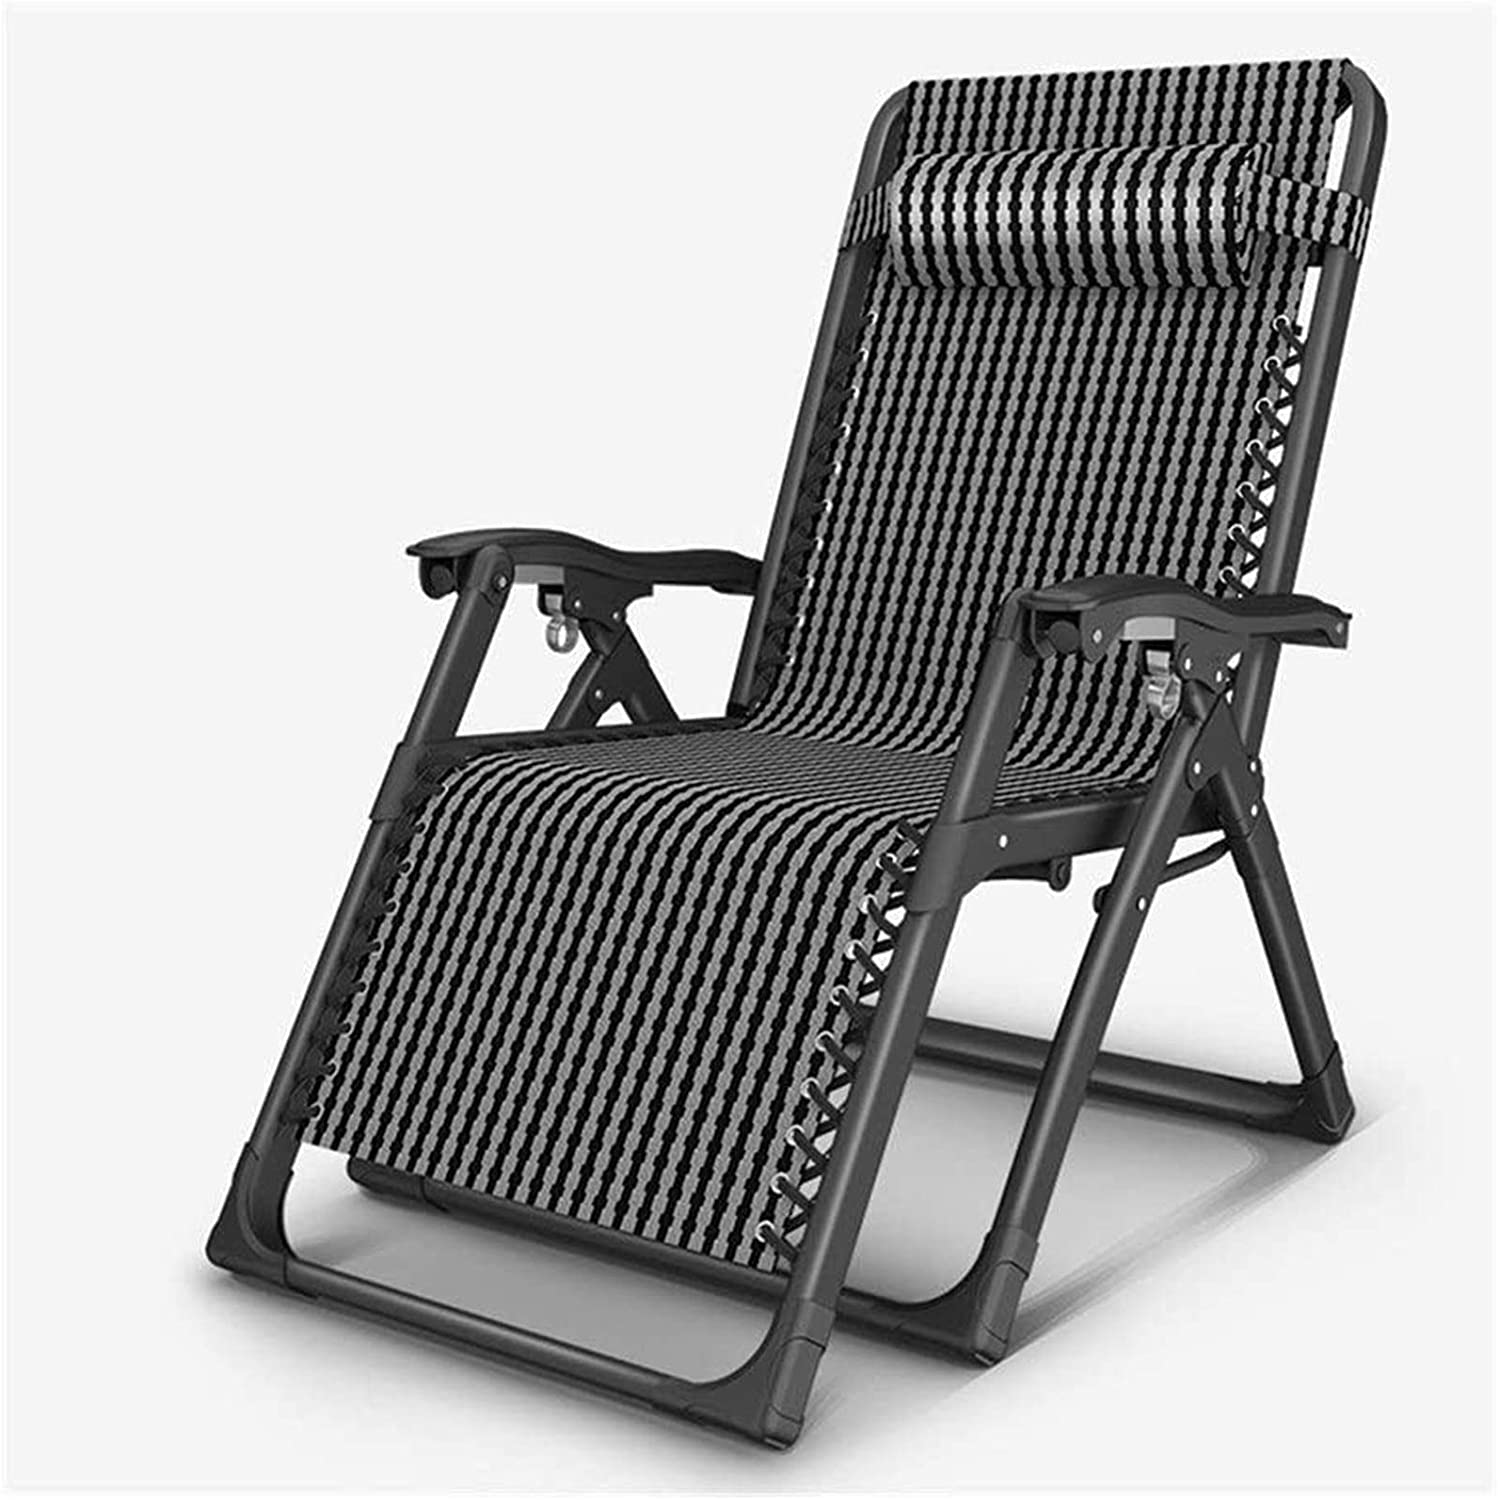 Outdoor Lounge Chairs Sun 67% OFF of fixed price Sales Loungers Lo Recliner FGVDJ Rocker